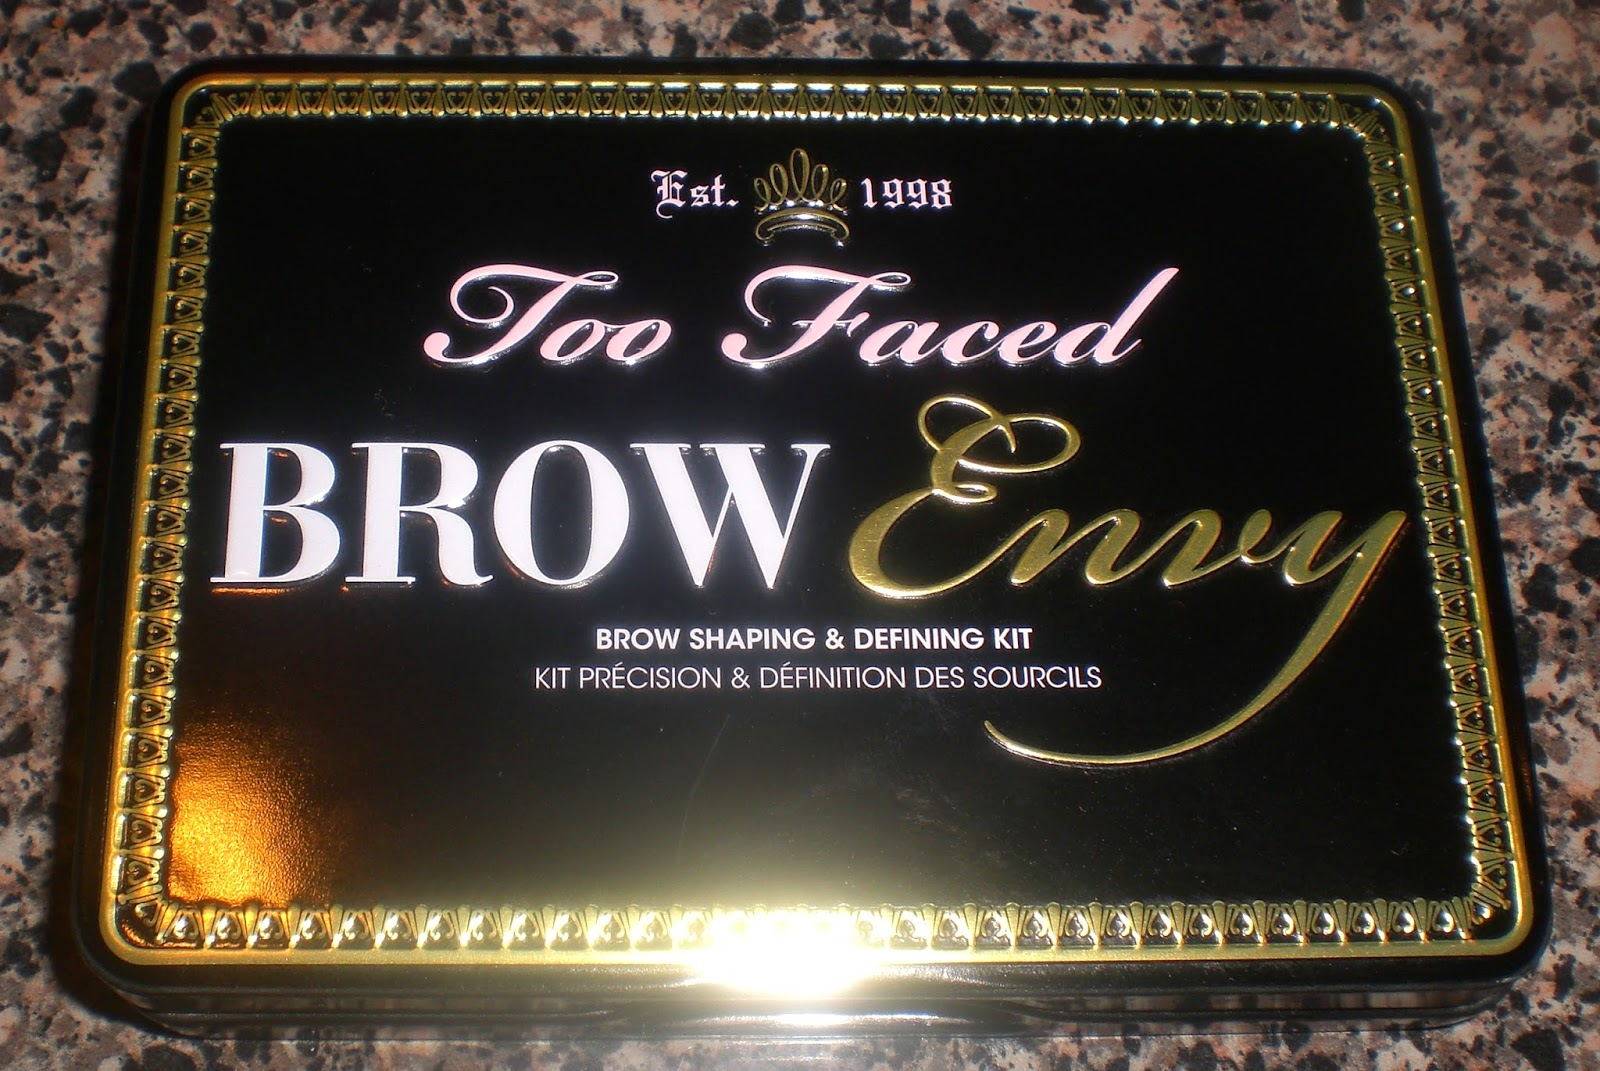 Cotton Candy Fro Too Faced Brow Envy Eyebrow Kit